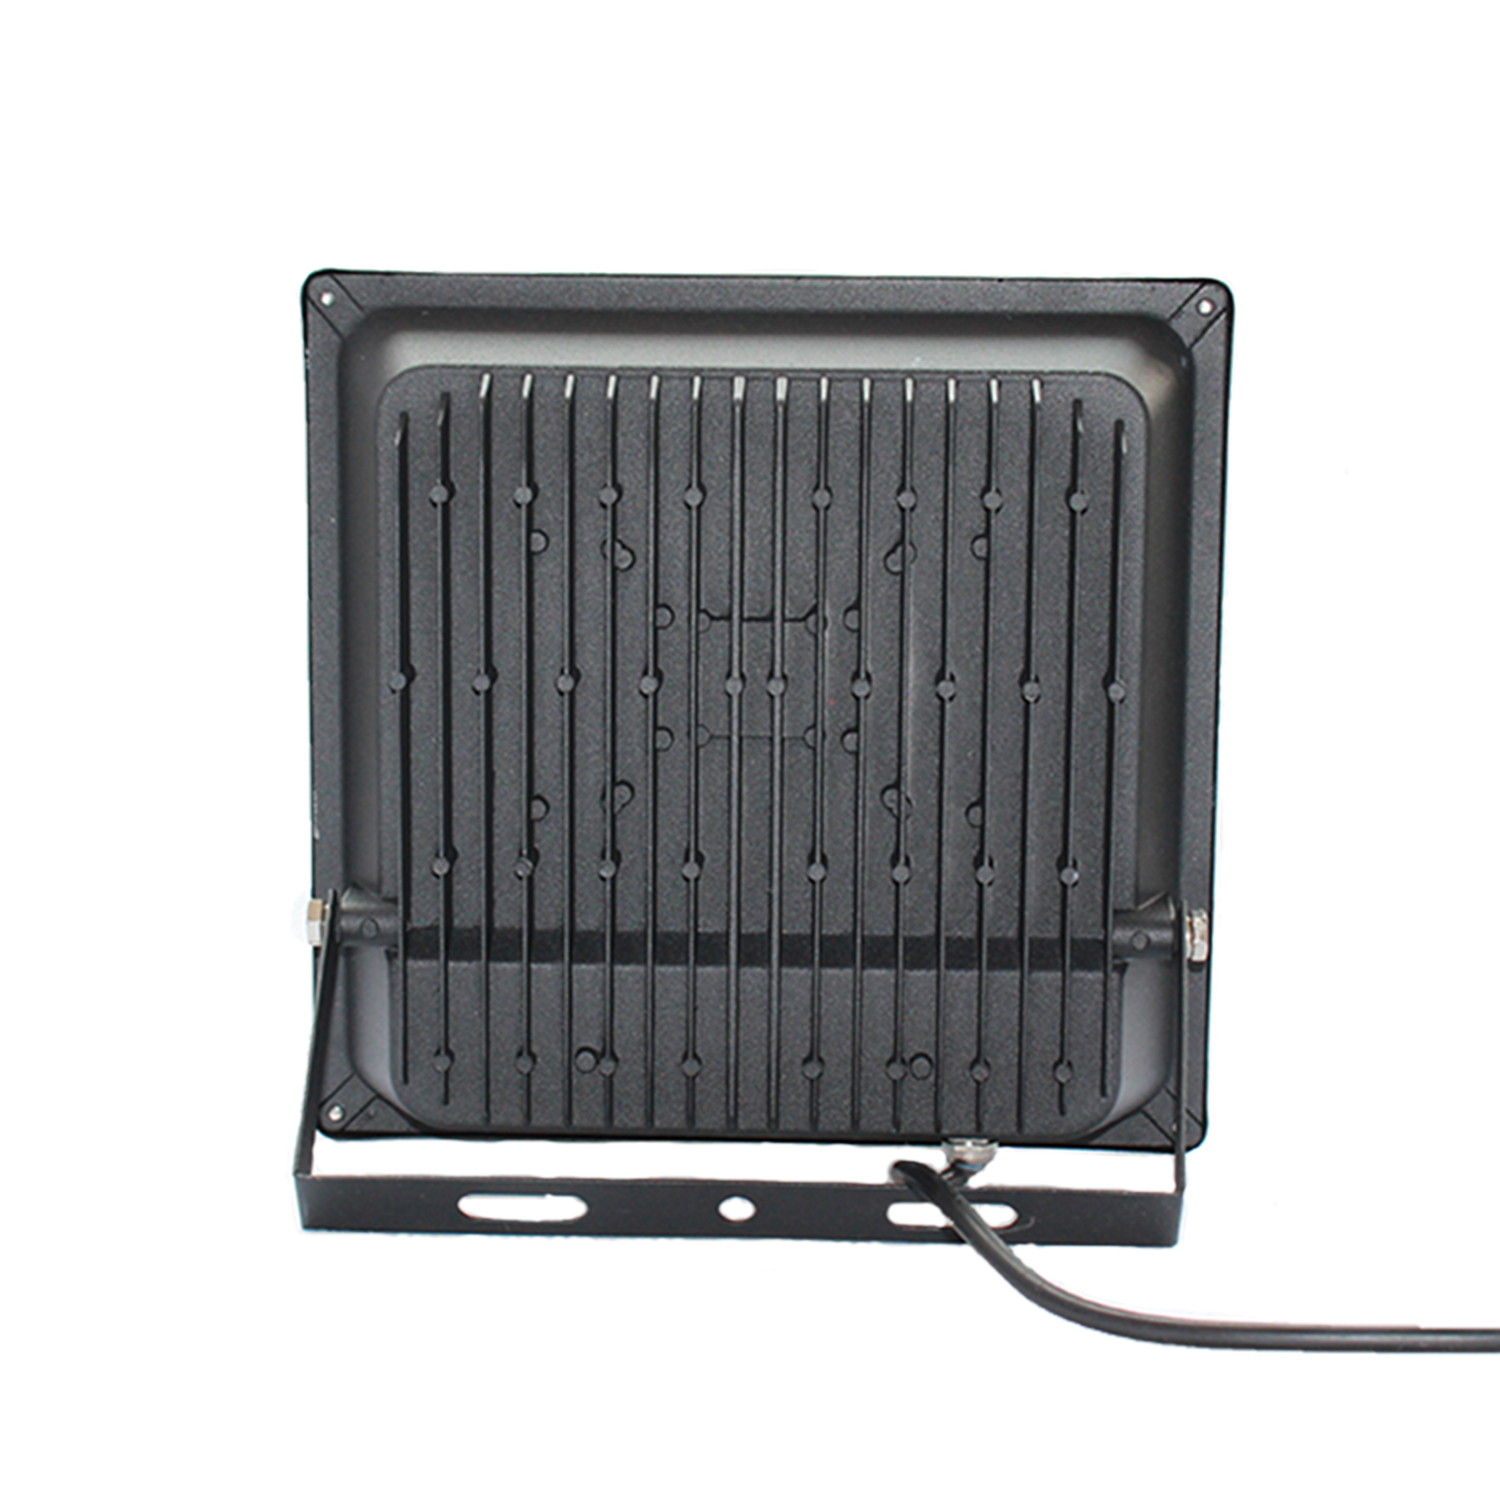 Picture of Slim LED floodlight-Square itemNO.ZPSL-001